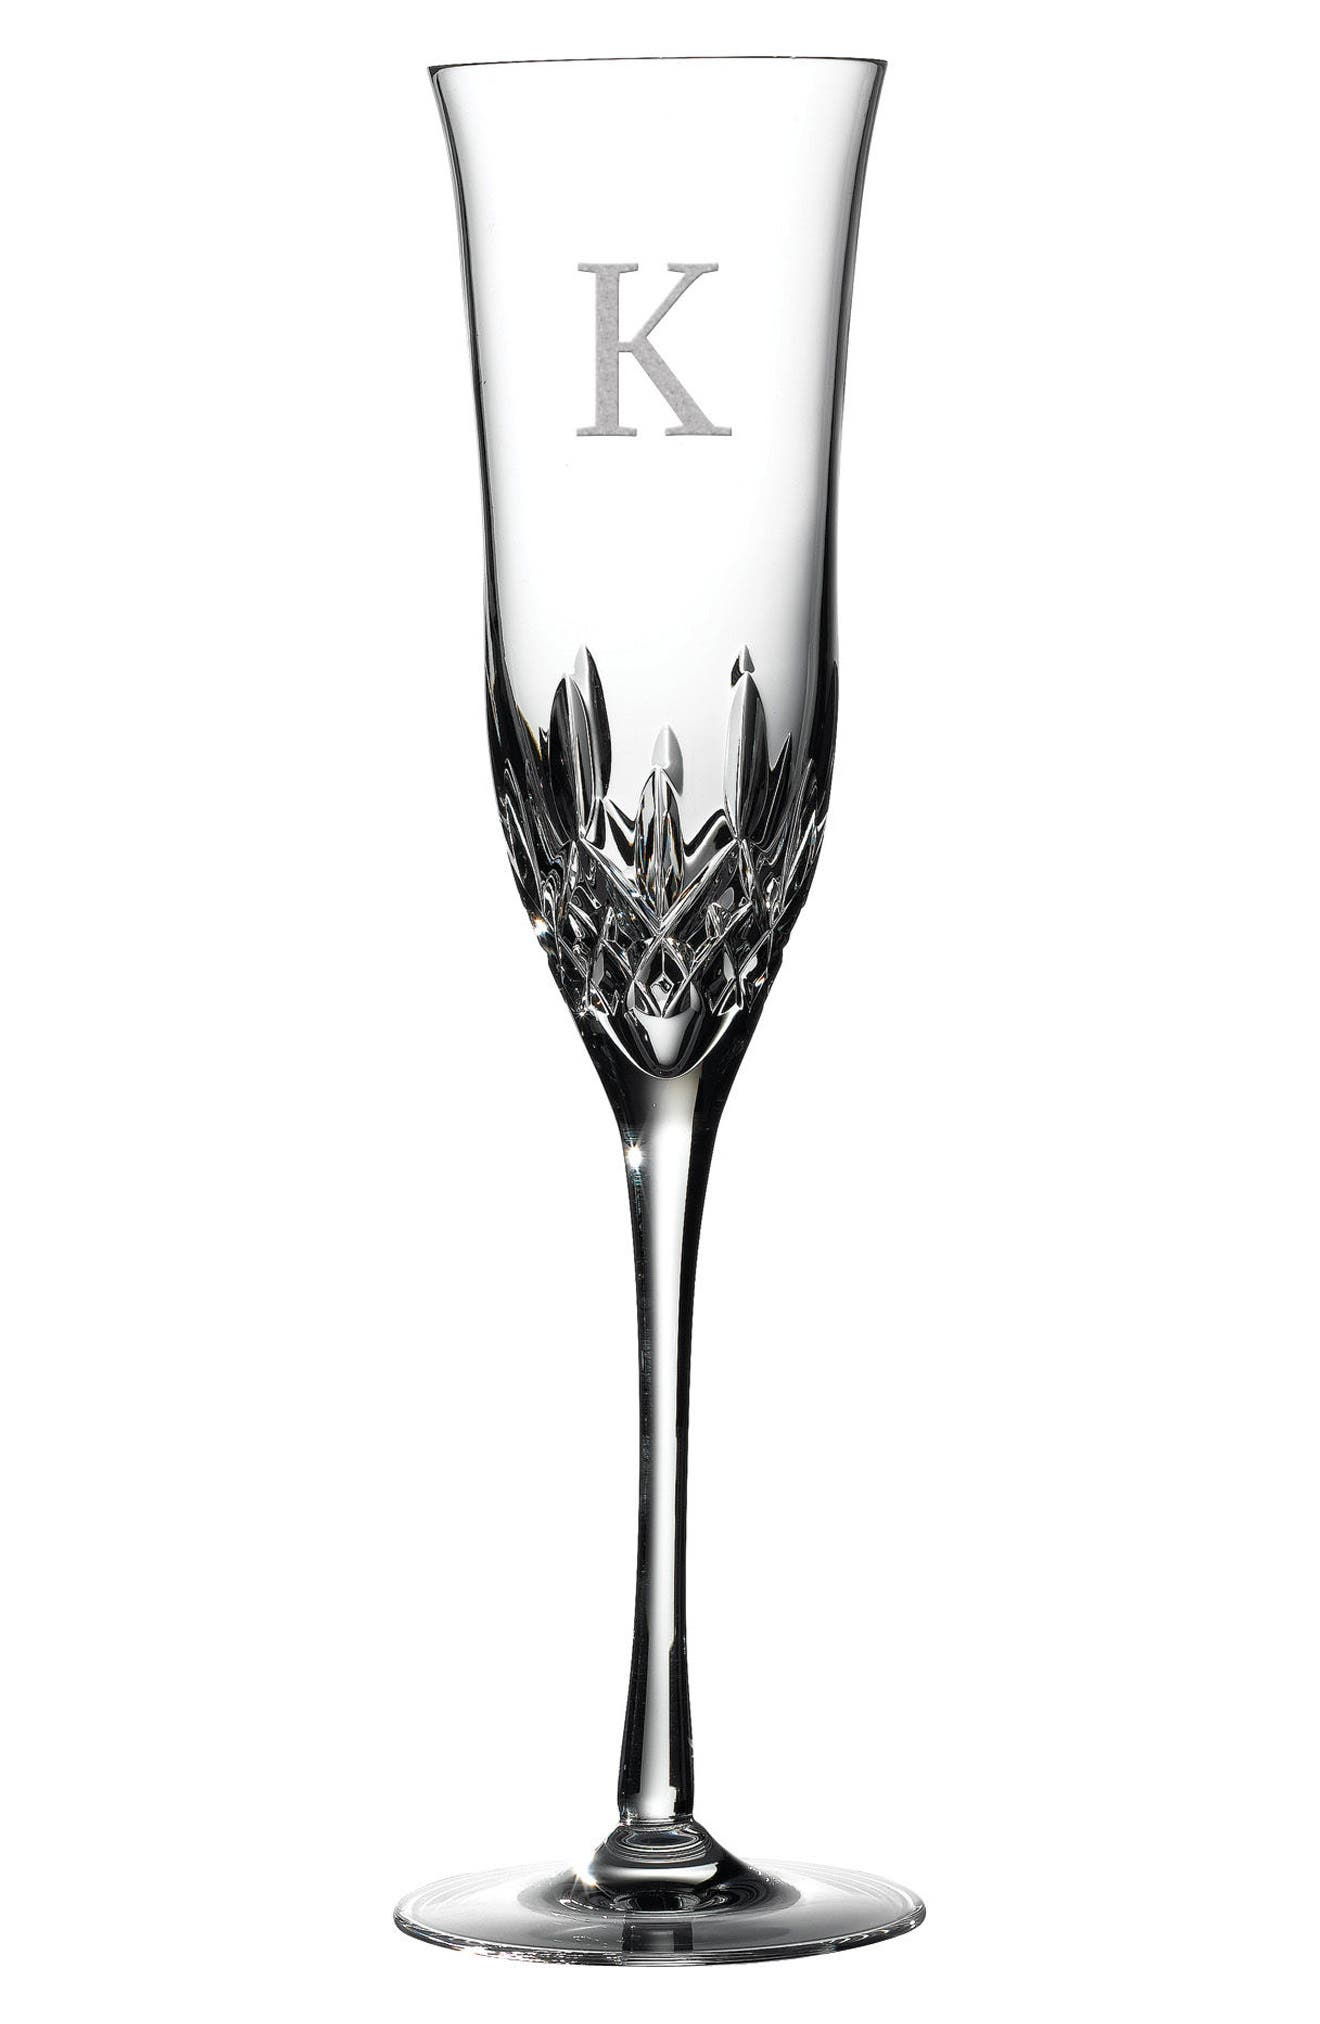 WATERFORD Lismore Essence Set of 2 Monogram Lead Crystal Champagne Flutes, Main, color, CLEAR - K